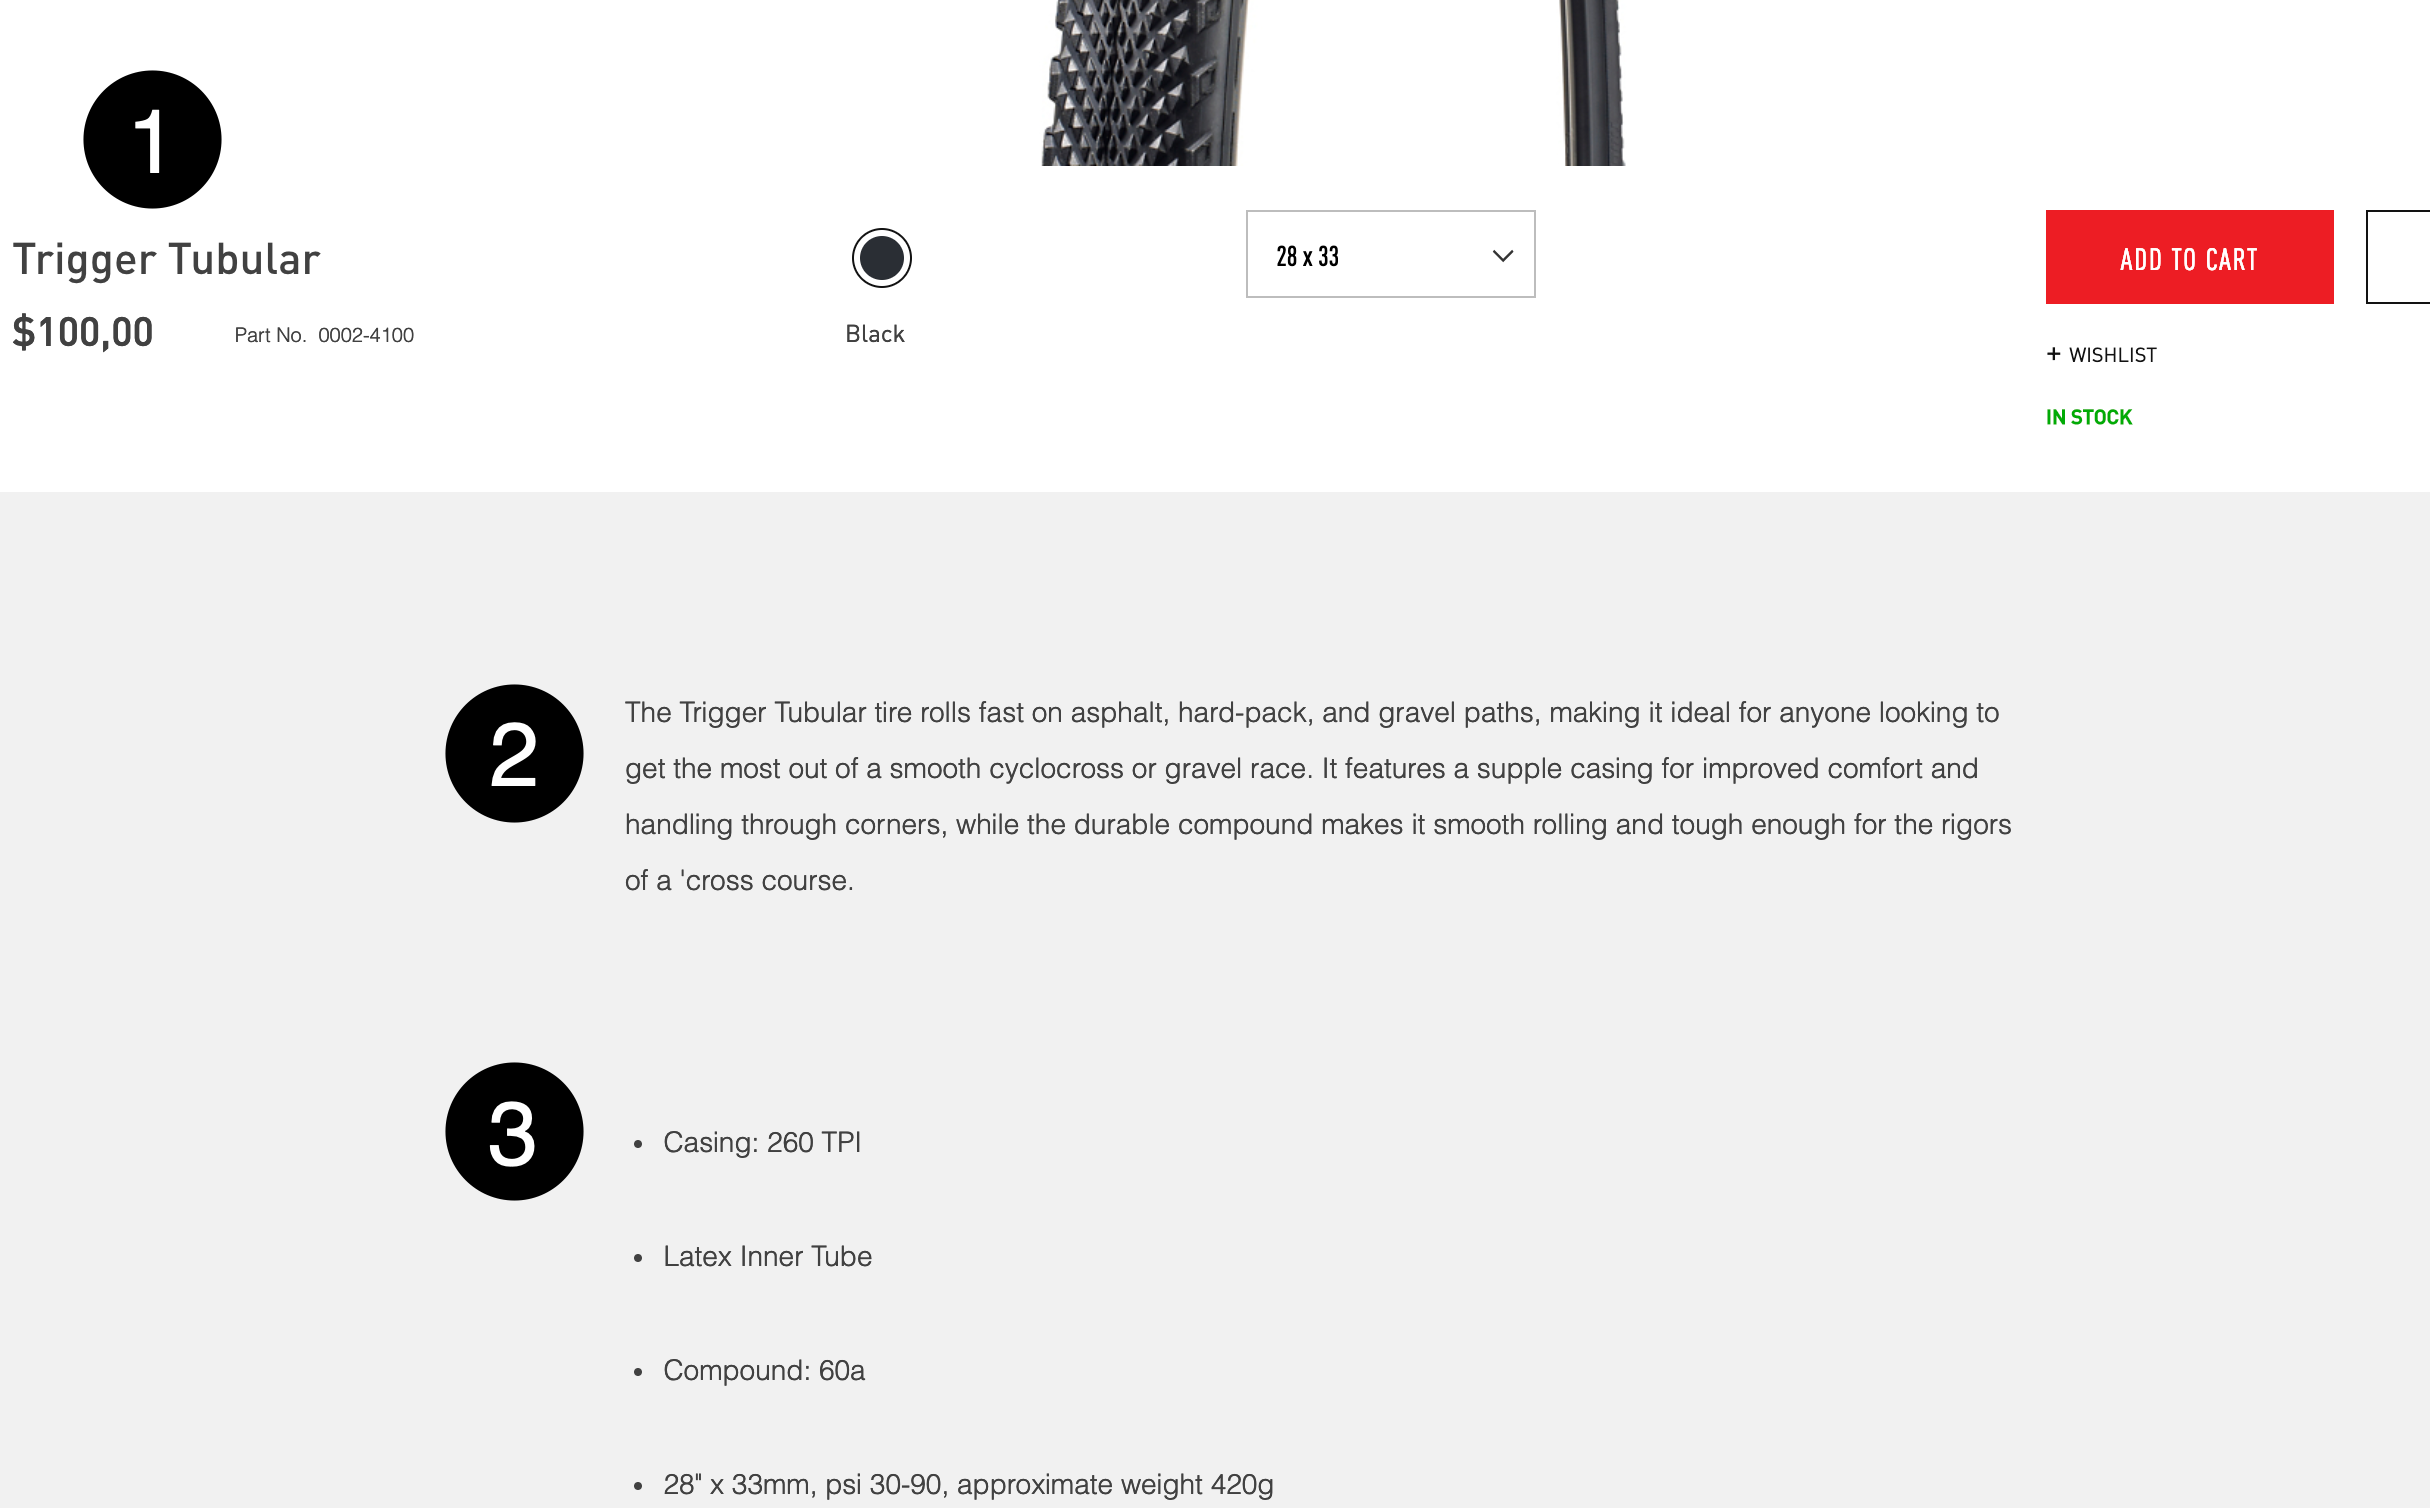 The Product Description Page